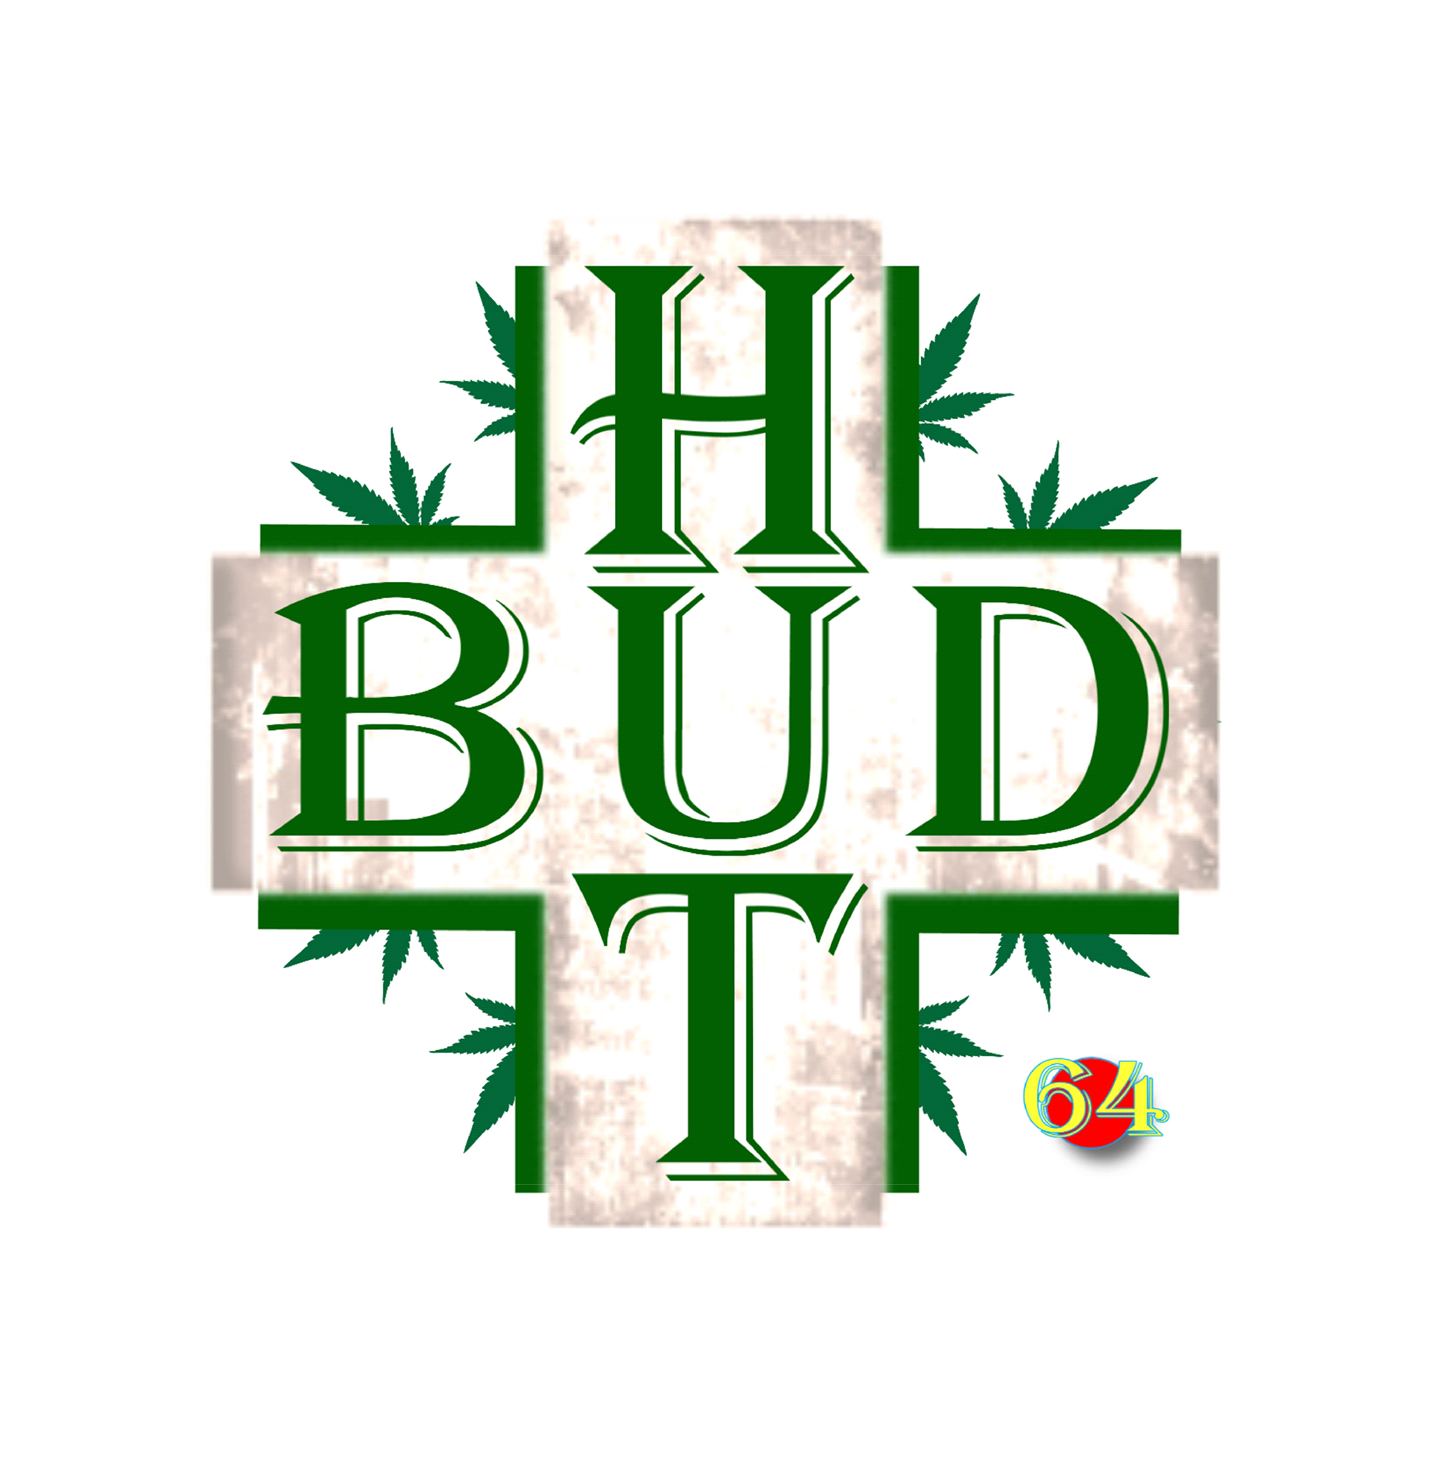 Bud Hut Inc